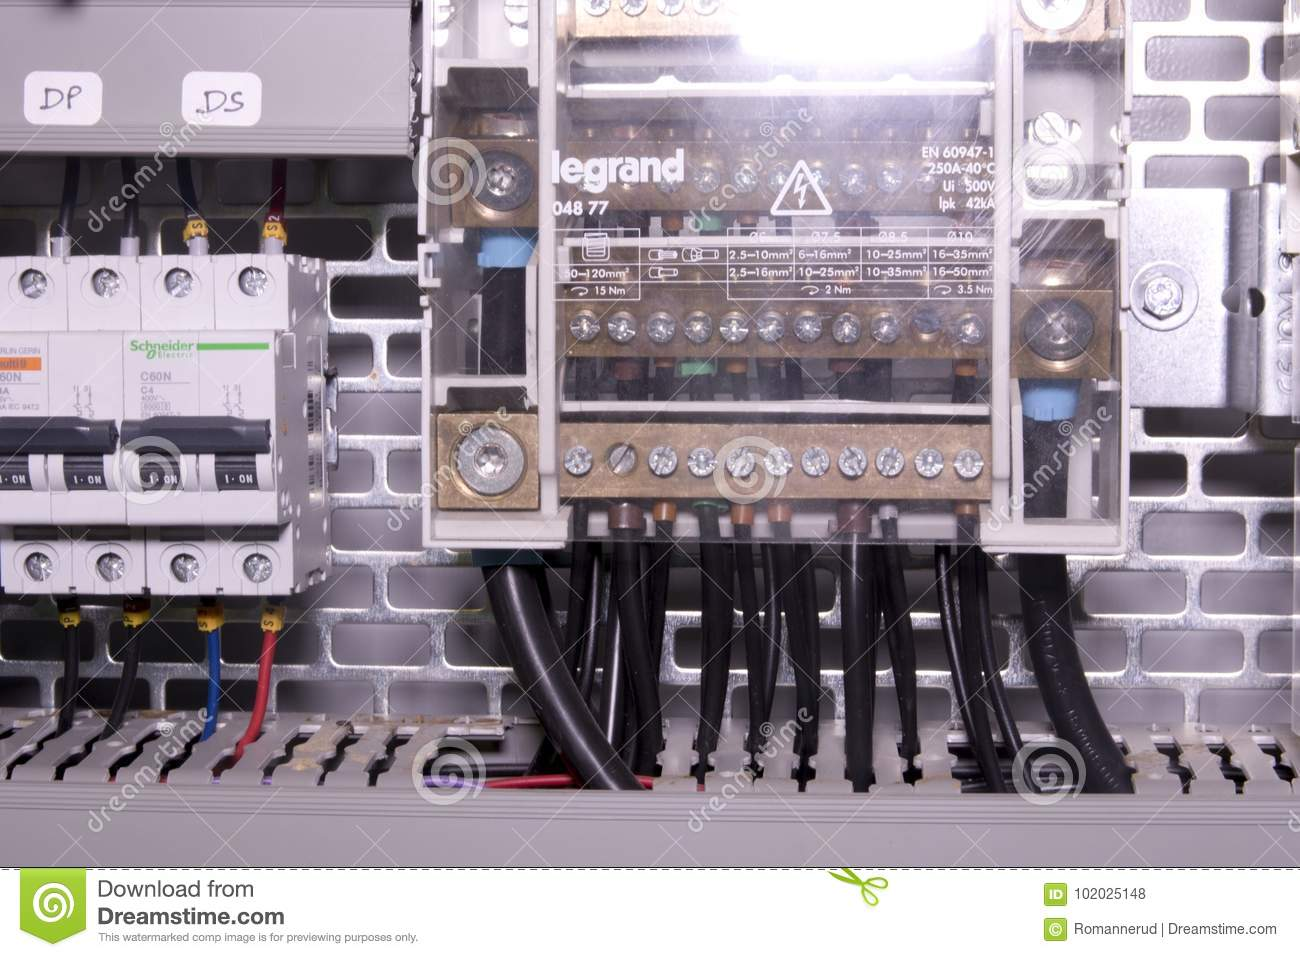 Image Shows Control Cubicle Schneider Circuit Breakers And Legrand How To Connect A Breaker Download Electric Device Inside Power Case